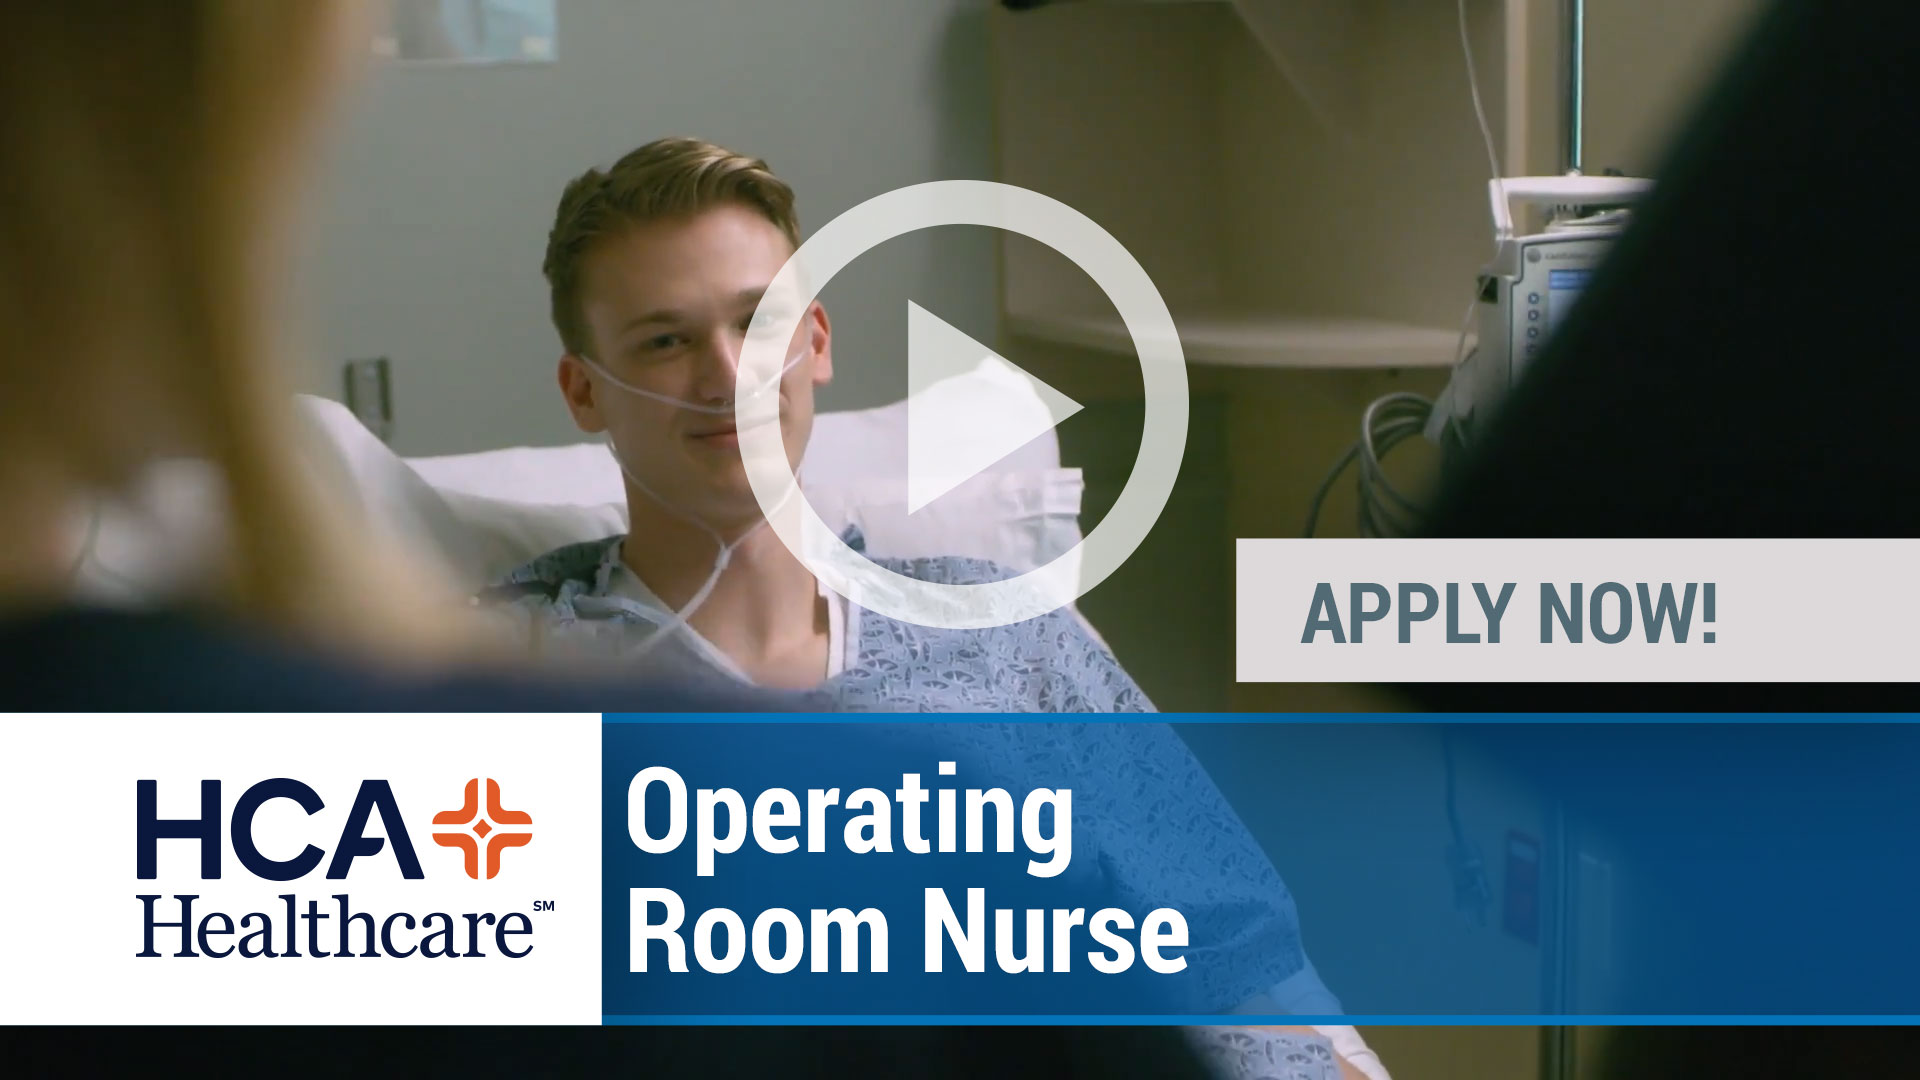 Watch our careers video for available job opening Operating Room Nurse in Ocala, Florida